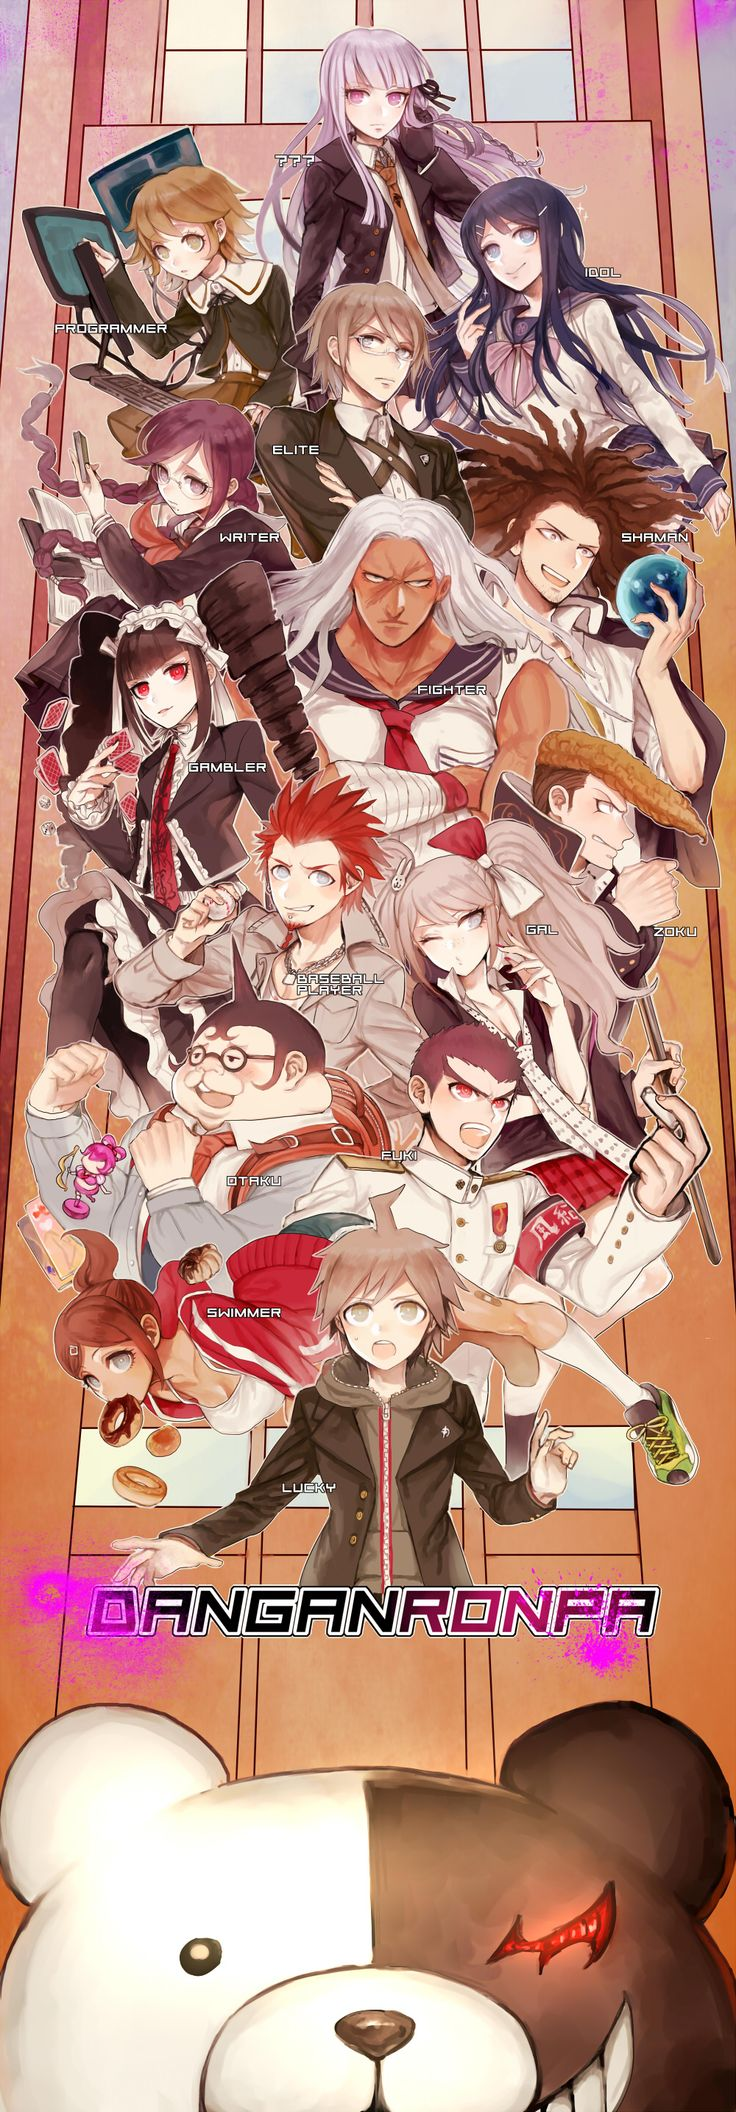 Dangan Ronpa. Started playing this game and then basically didn't stop until I finished. Quite gripping!   The problem with mystery games though is when you figured out the answer 5 hours ago but the protagonist you play has yet to catch on...